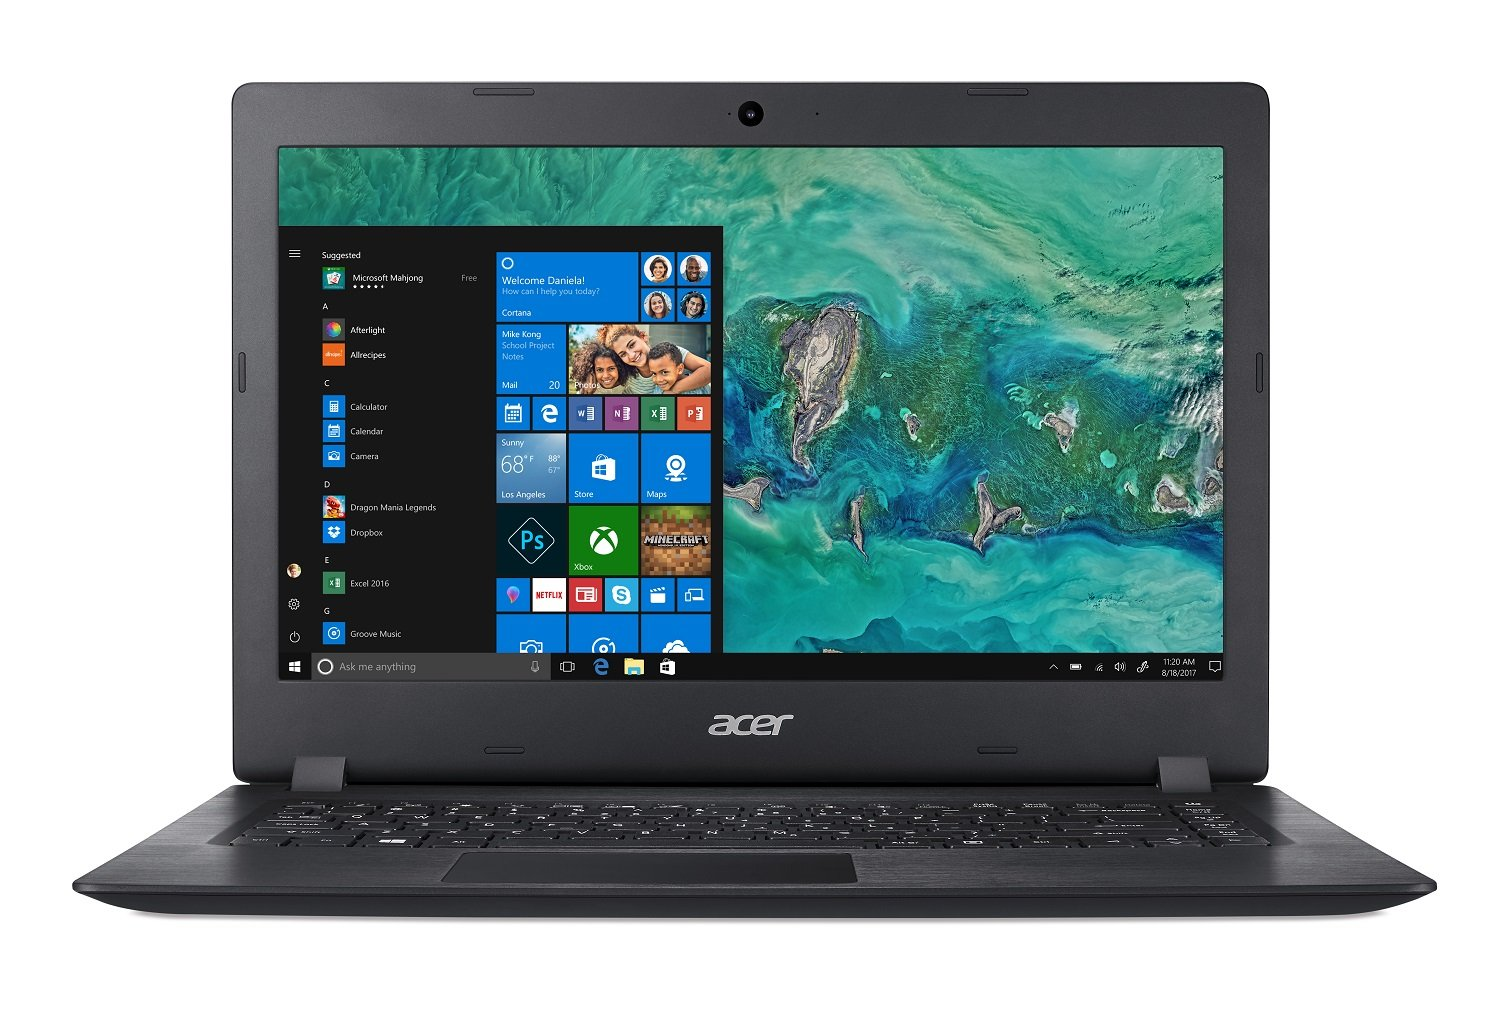 Acer Aspire 1 A114-32-C1YA, 14'' Full HD, Intel Celeron N4000, 4GB DDR4, 64GB eMMC, Office 365 Personal, Windows 10 Home in S mode by Acer (Image #7)